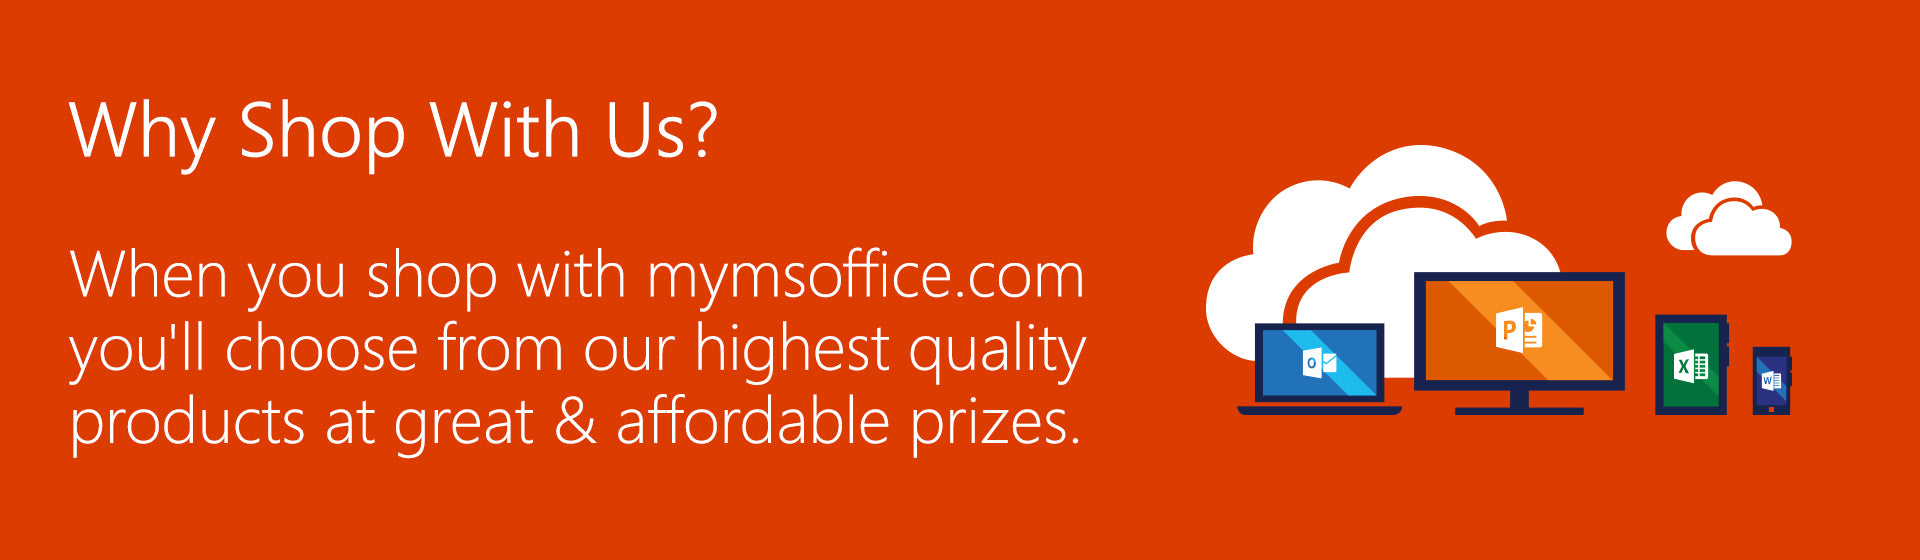 about mymsoffice